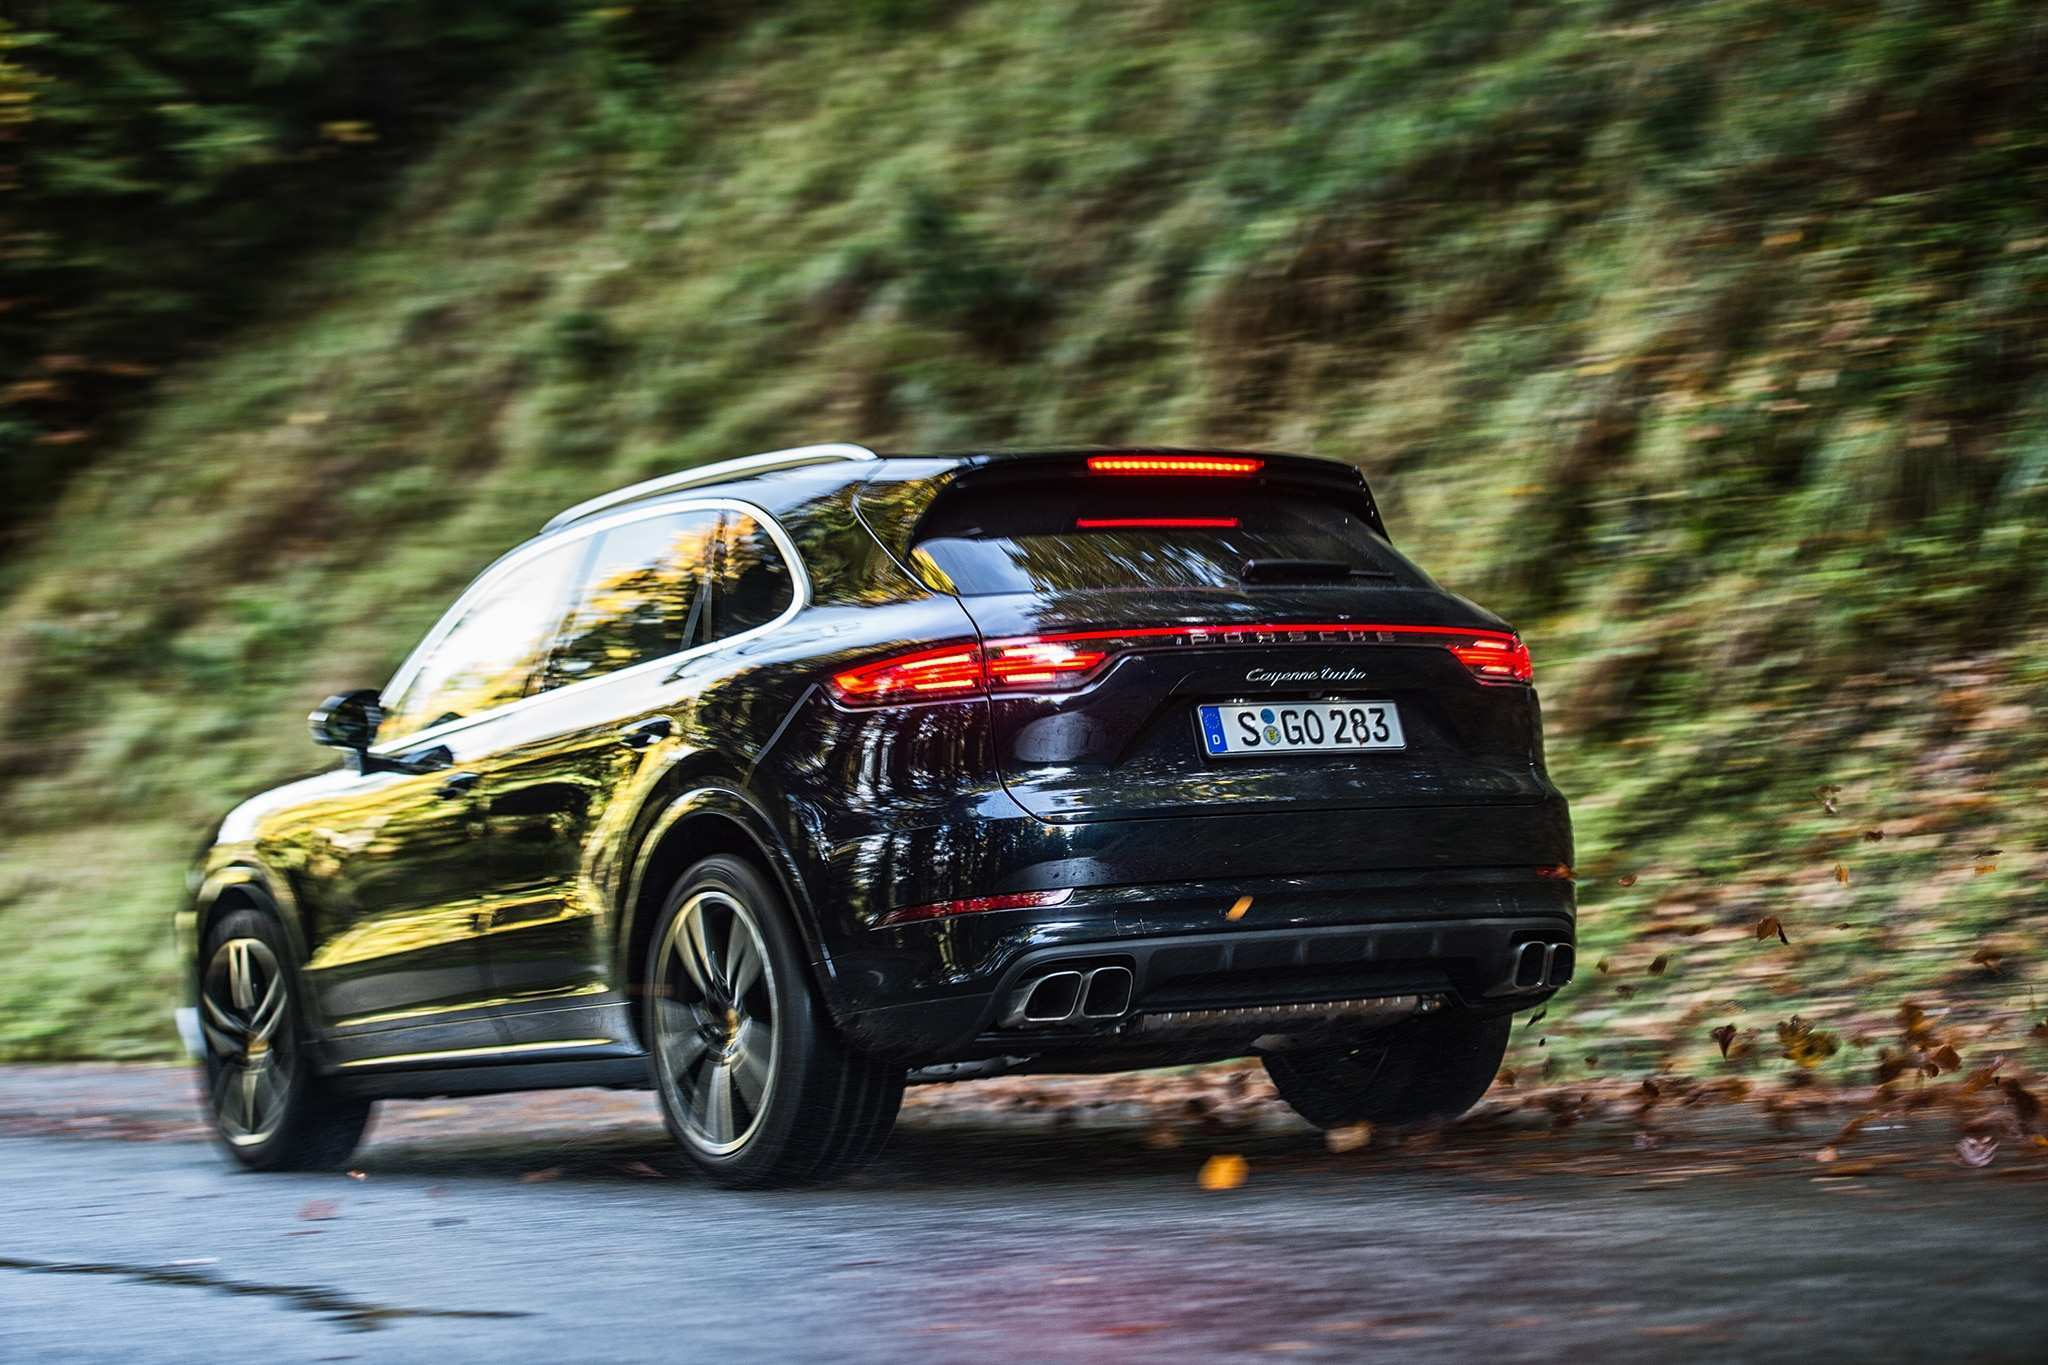 36 New 2019 Porsche Cayenne Turbo S Price And Release Date